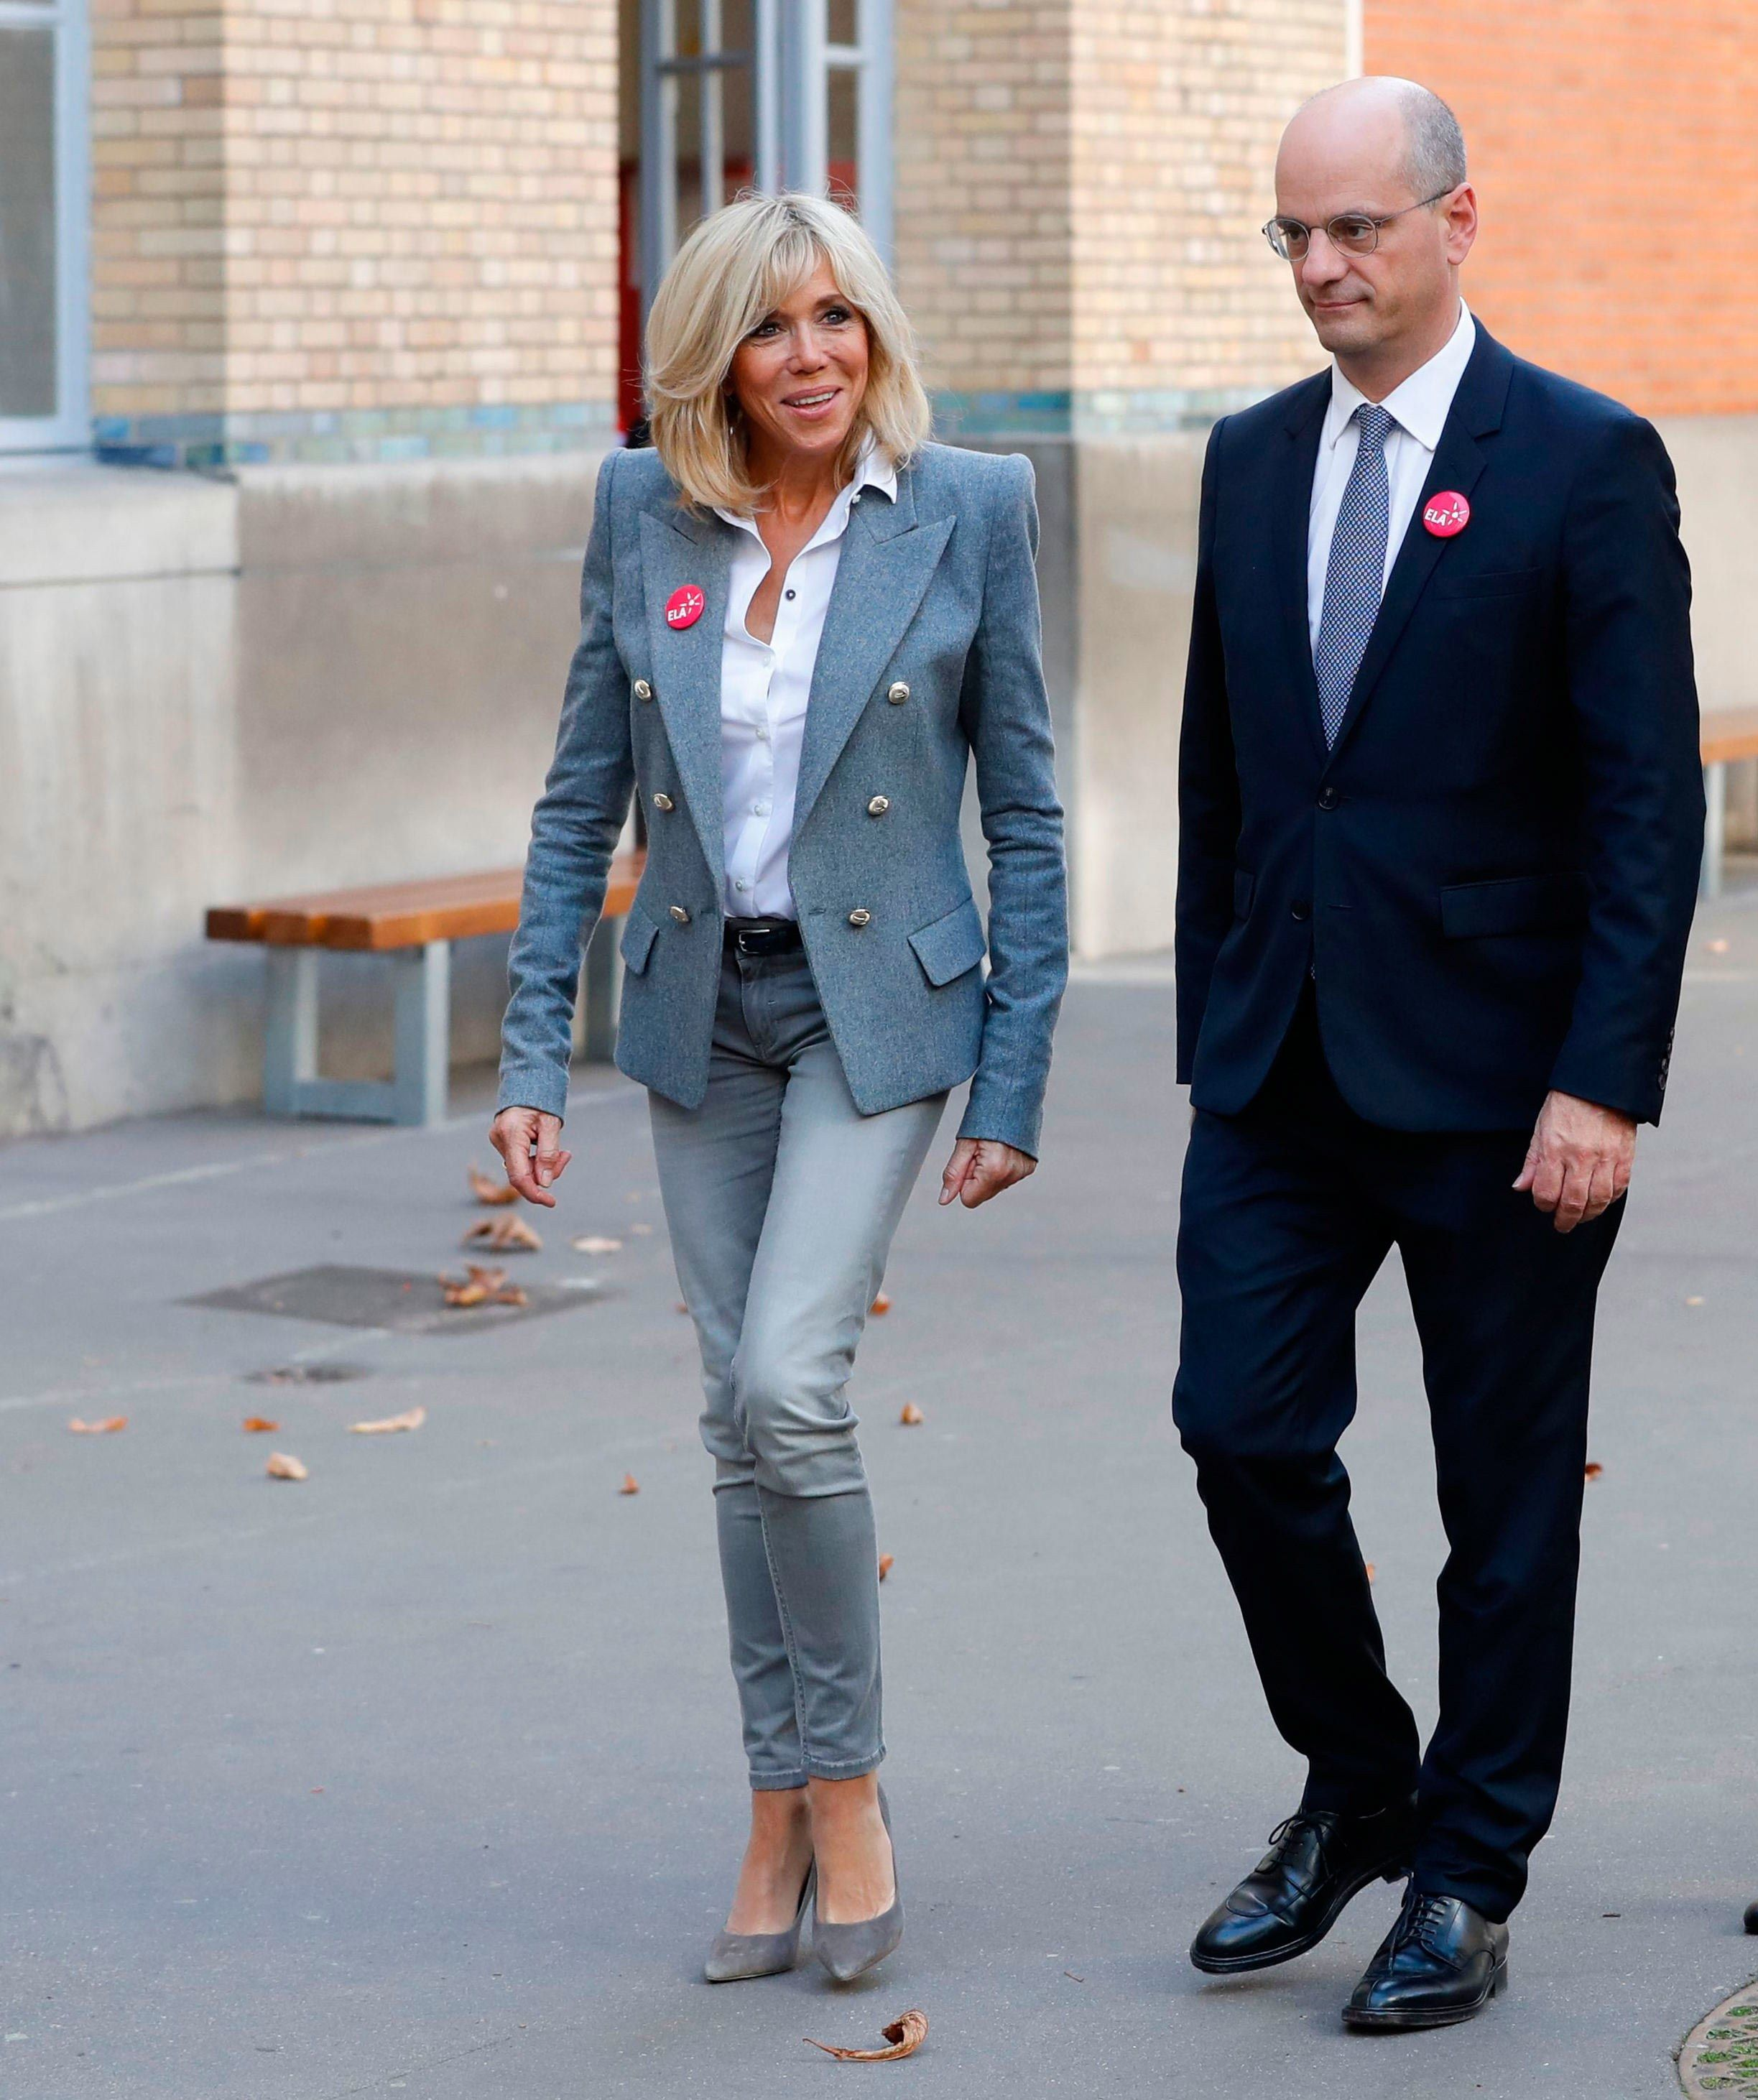 Brigitte Macron Proves A Jacket And Jeans Is The Best